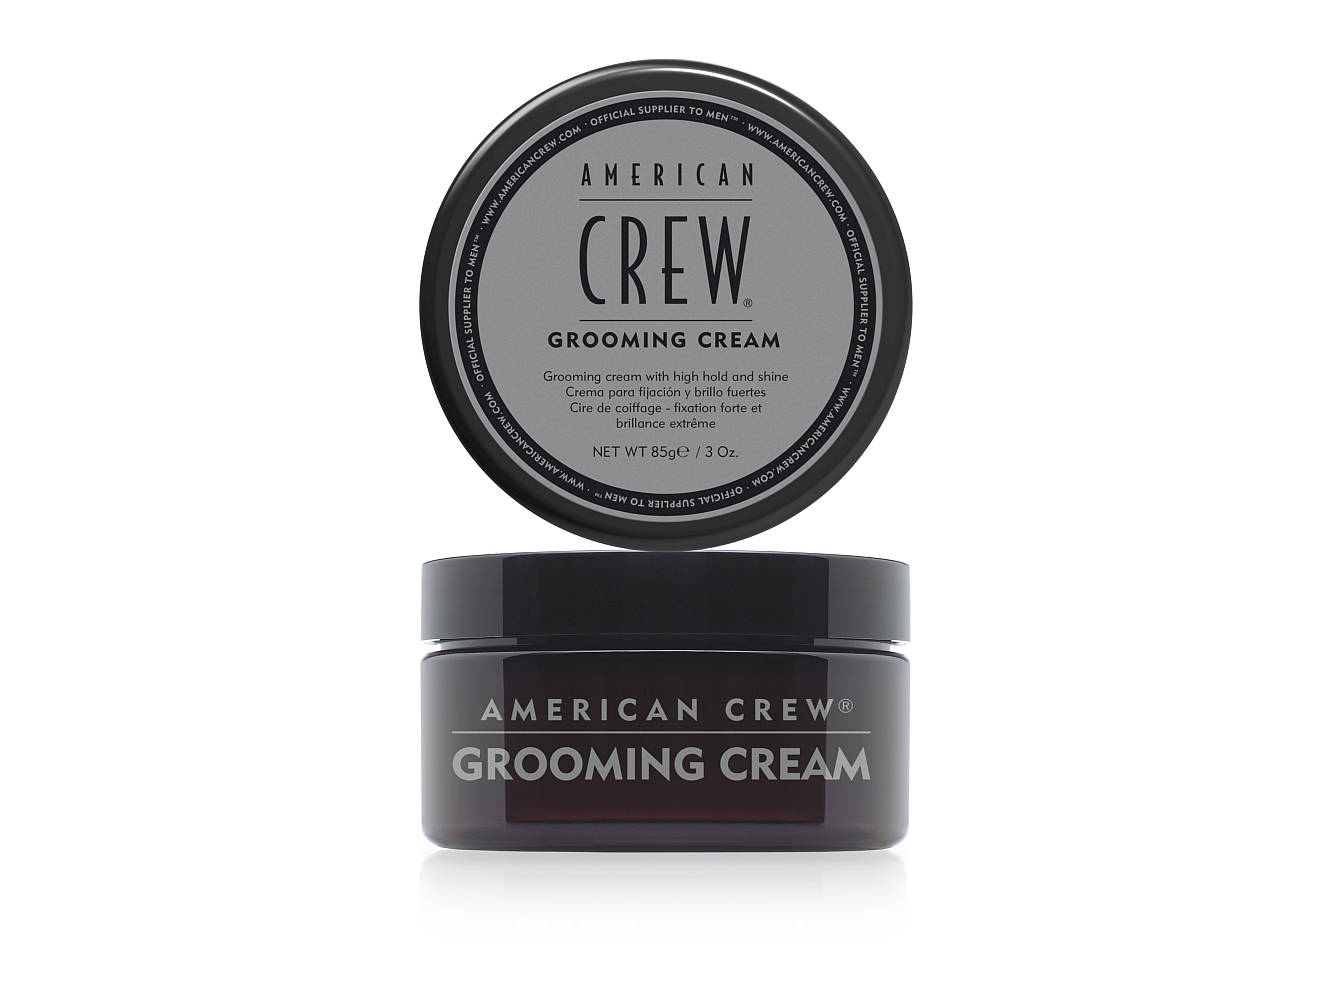 Arma Beauty - American Crew - Grooming Cream